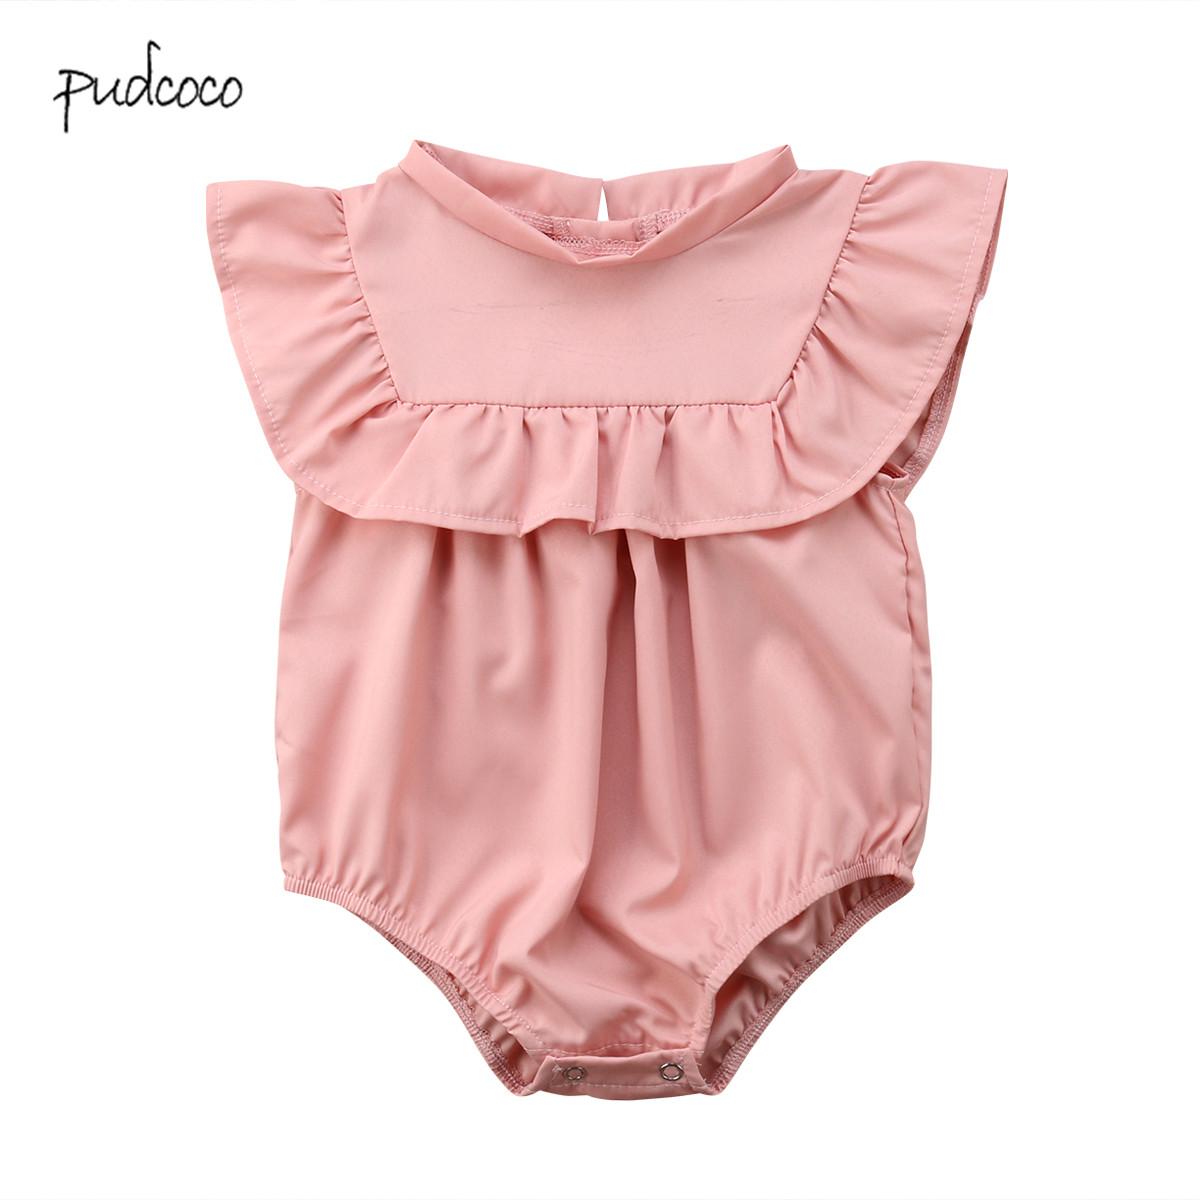 9f3c43313bd Detail Feedback Questions about Pudcoco New Brand Newborn Baby Boy Girls  Ruffle Bodysuit Jumpsuit Outfits Summer Clothes on Aliexpress.com